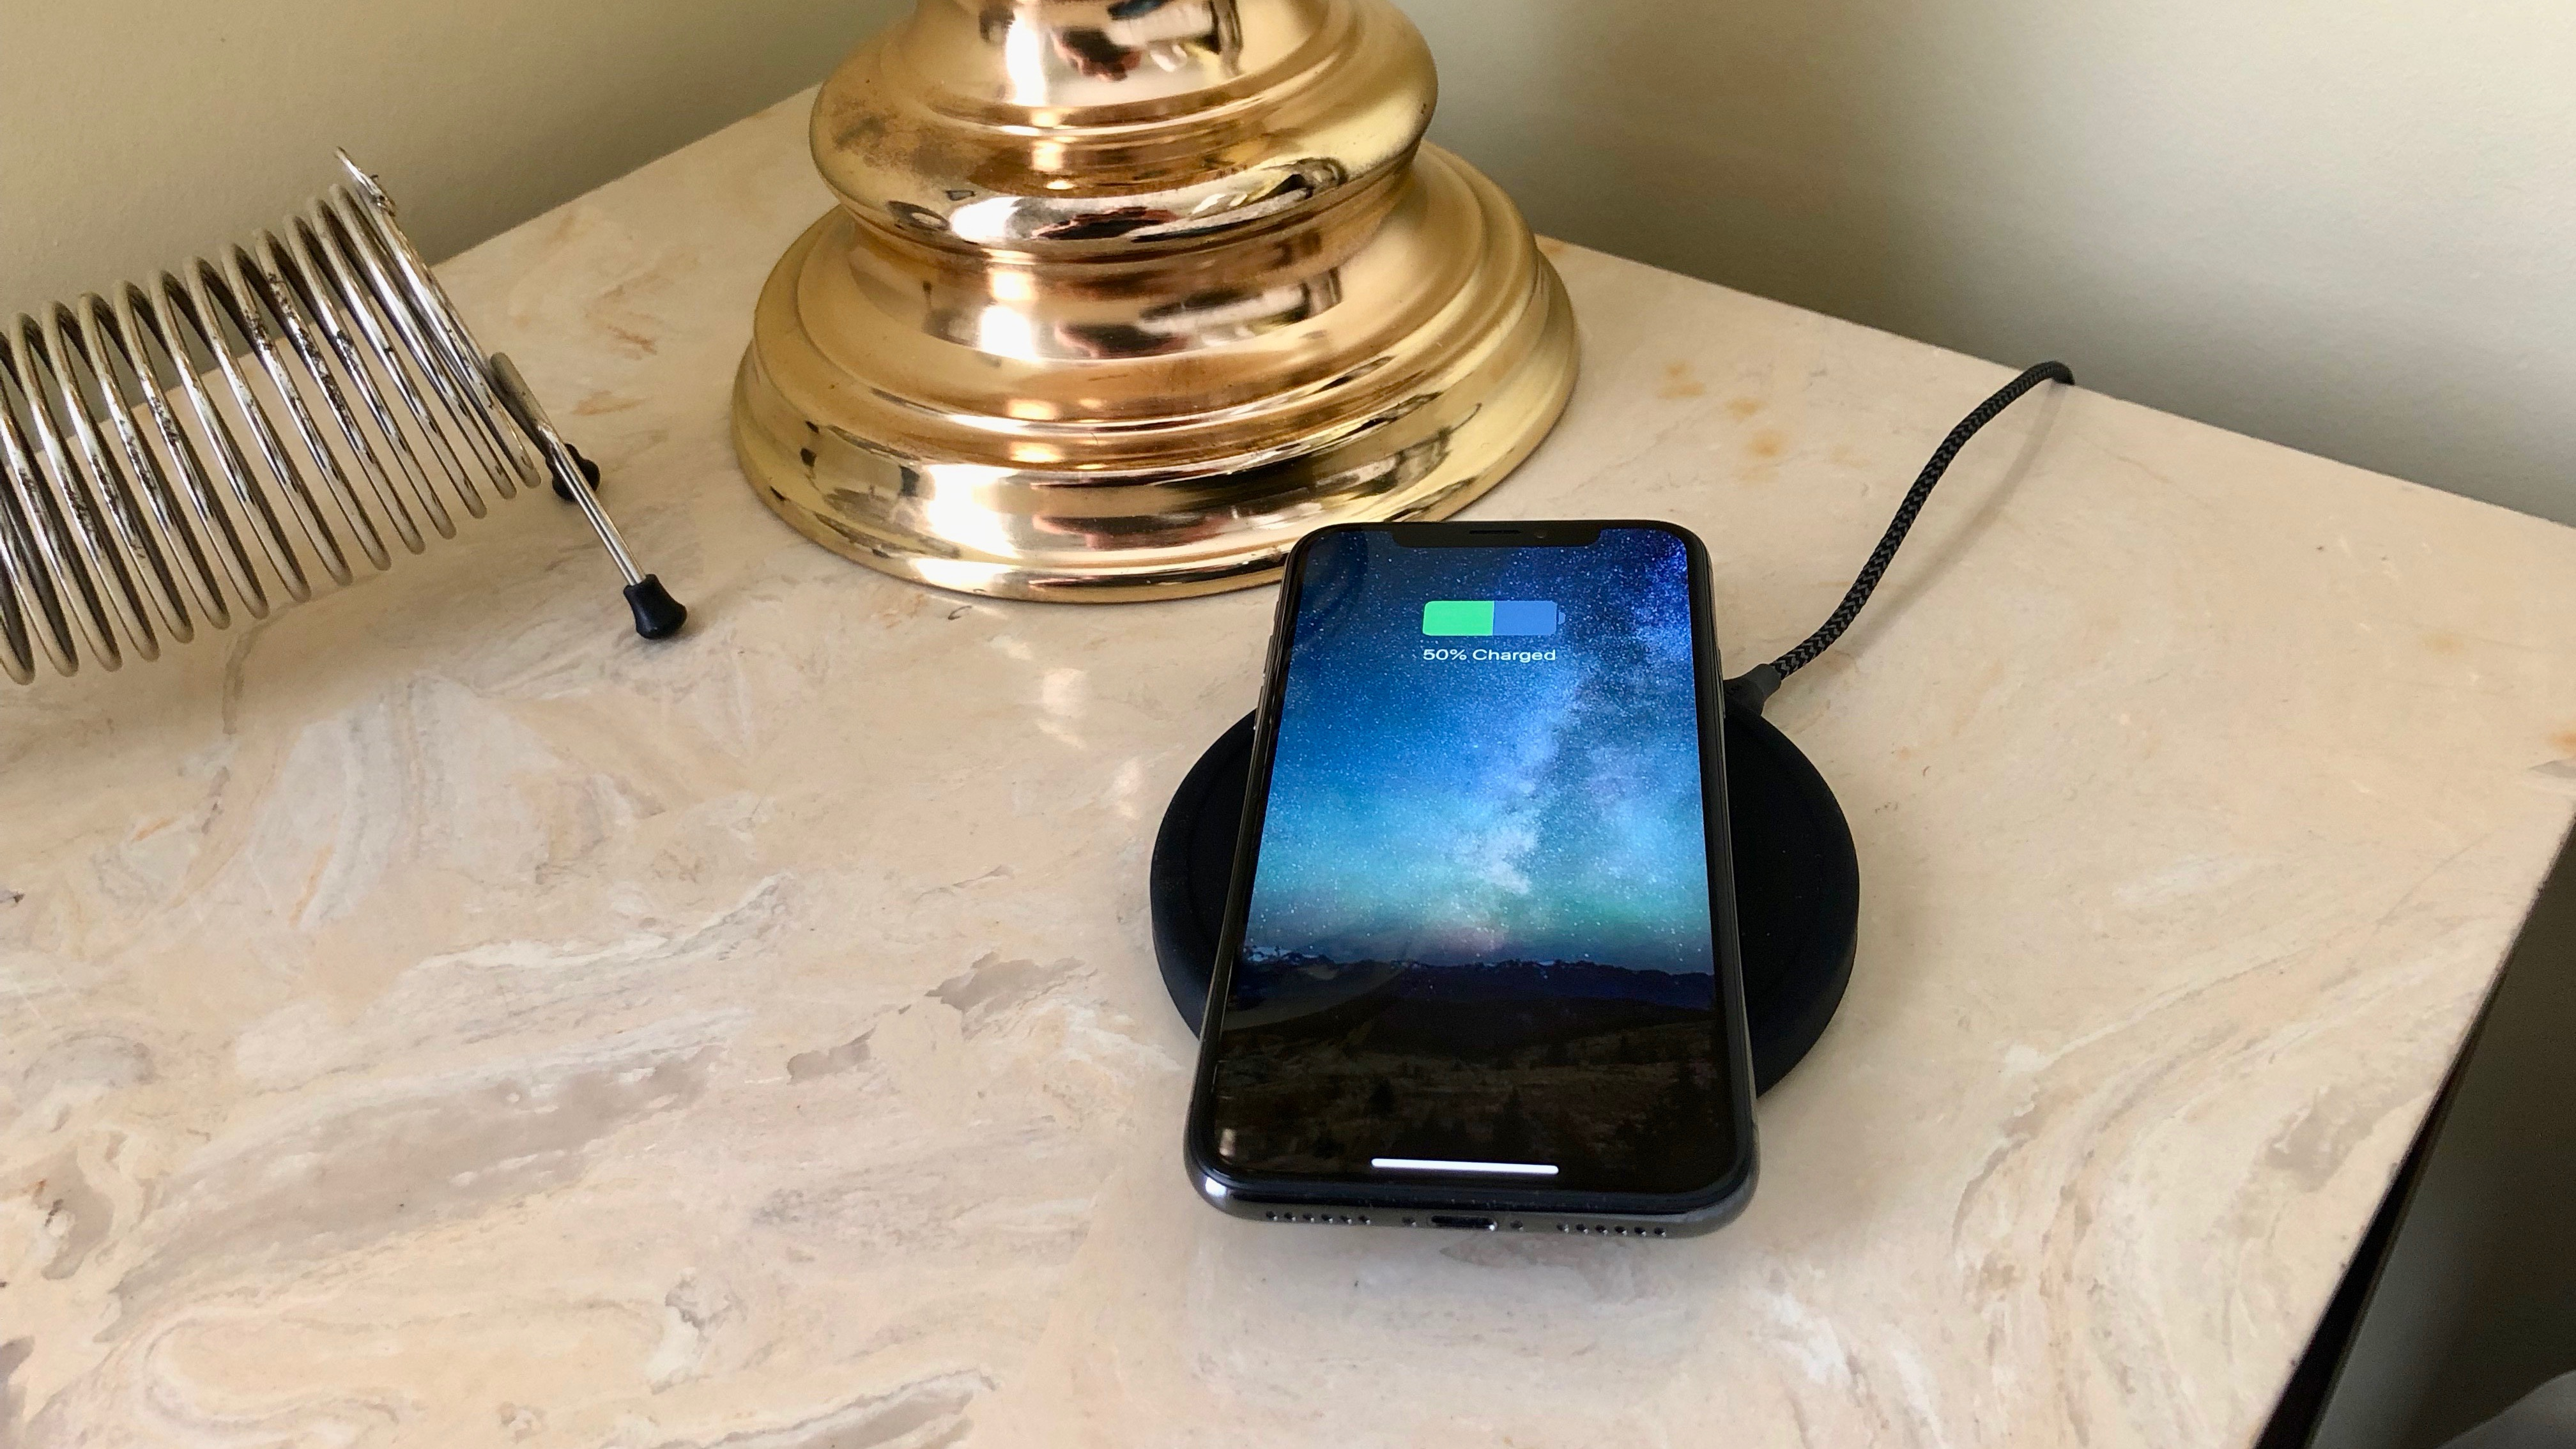 Hands-on with ElevationLab's distraction-free NightPad wireless charger for iPhone